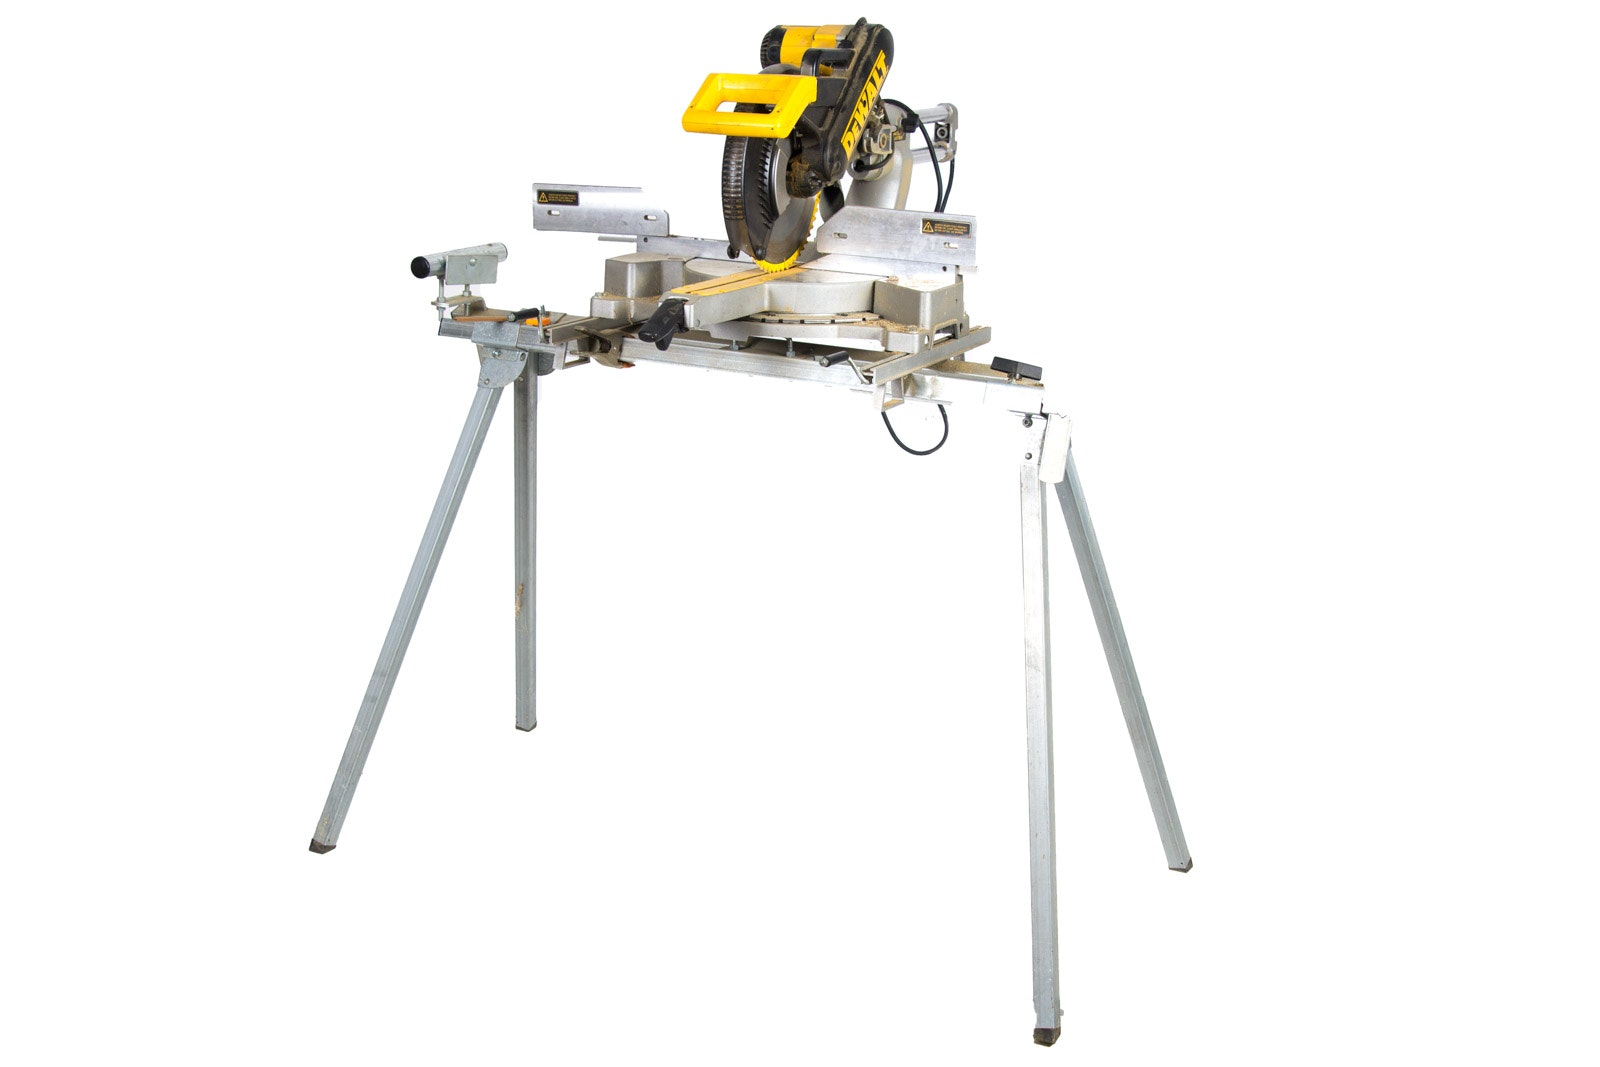 DeWalt DW708 12 Inch Sliding Compound Miter Saw with Stable Mate Plus 100 Folding Work Station